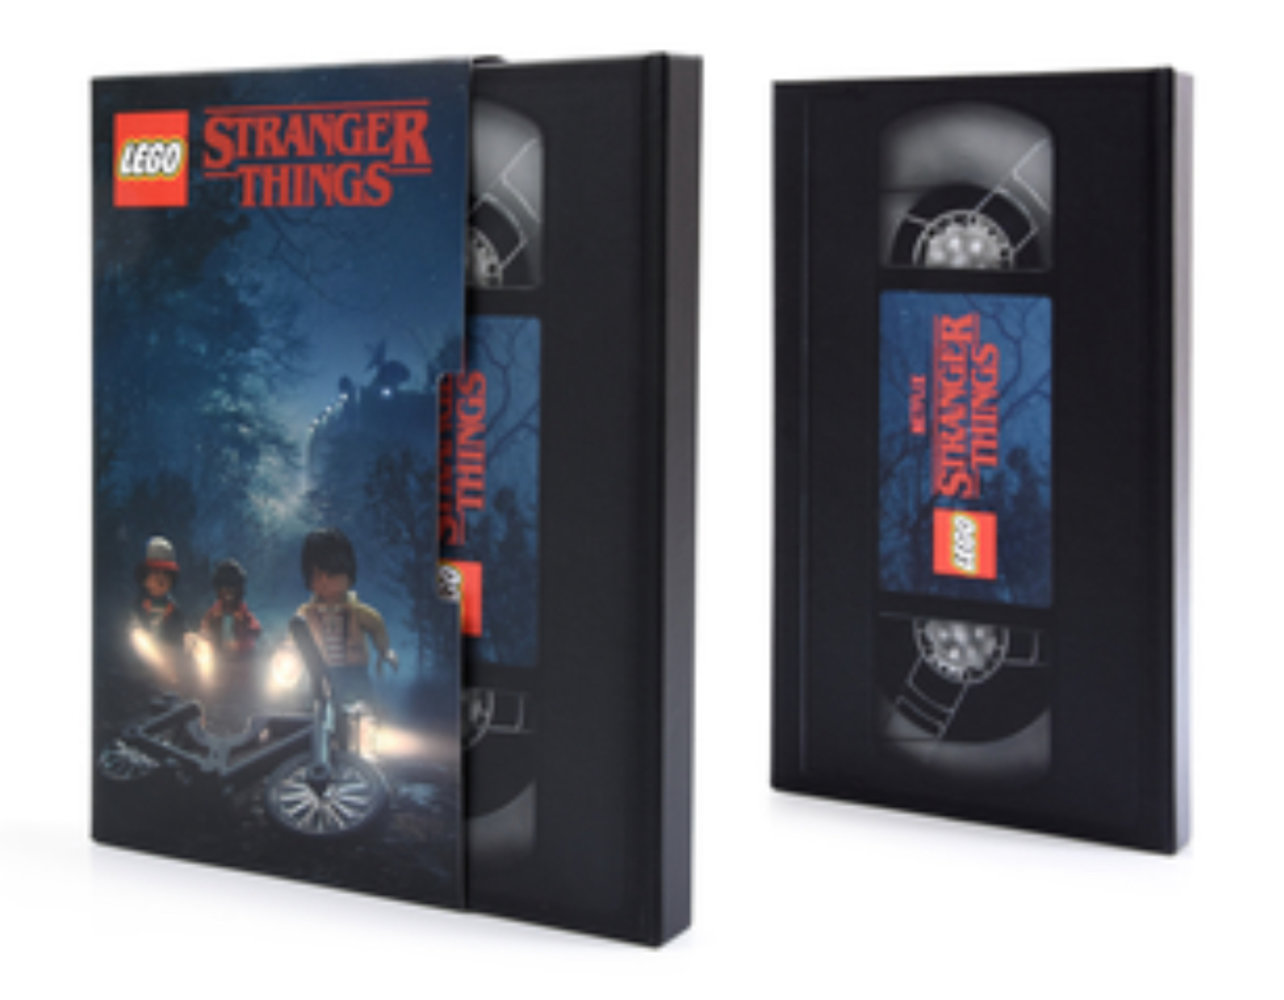 Stranger Things Sketchbook